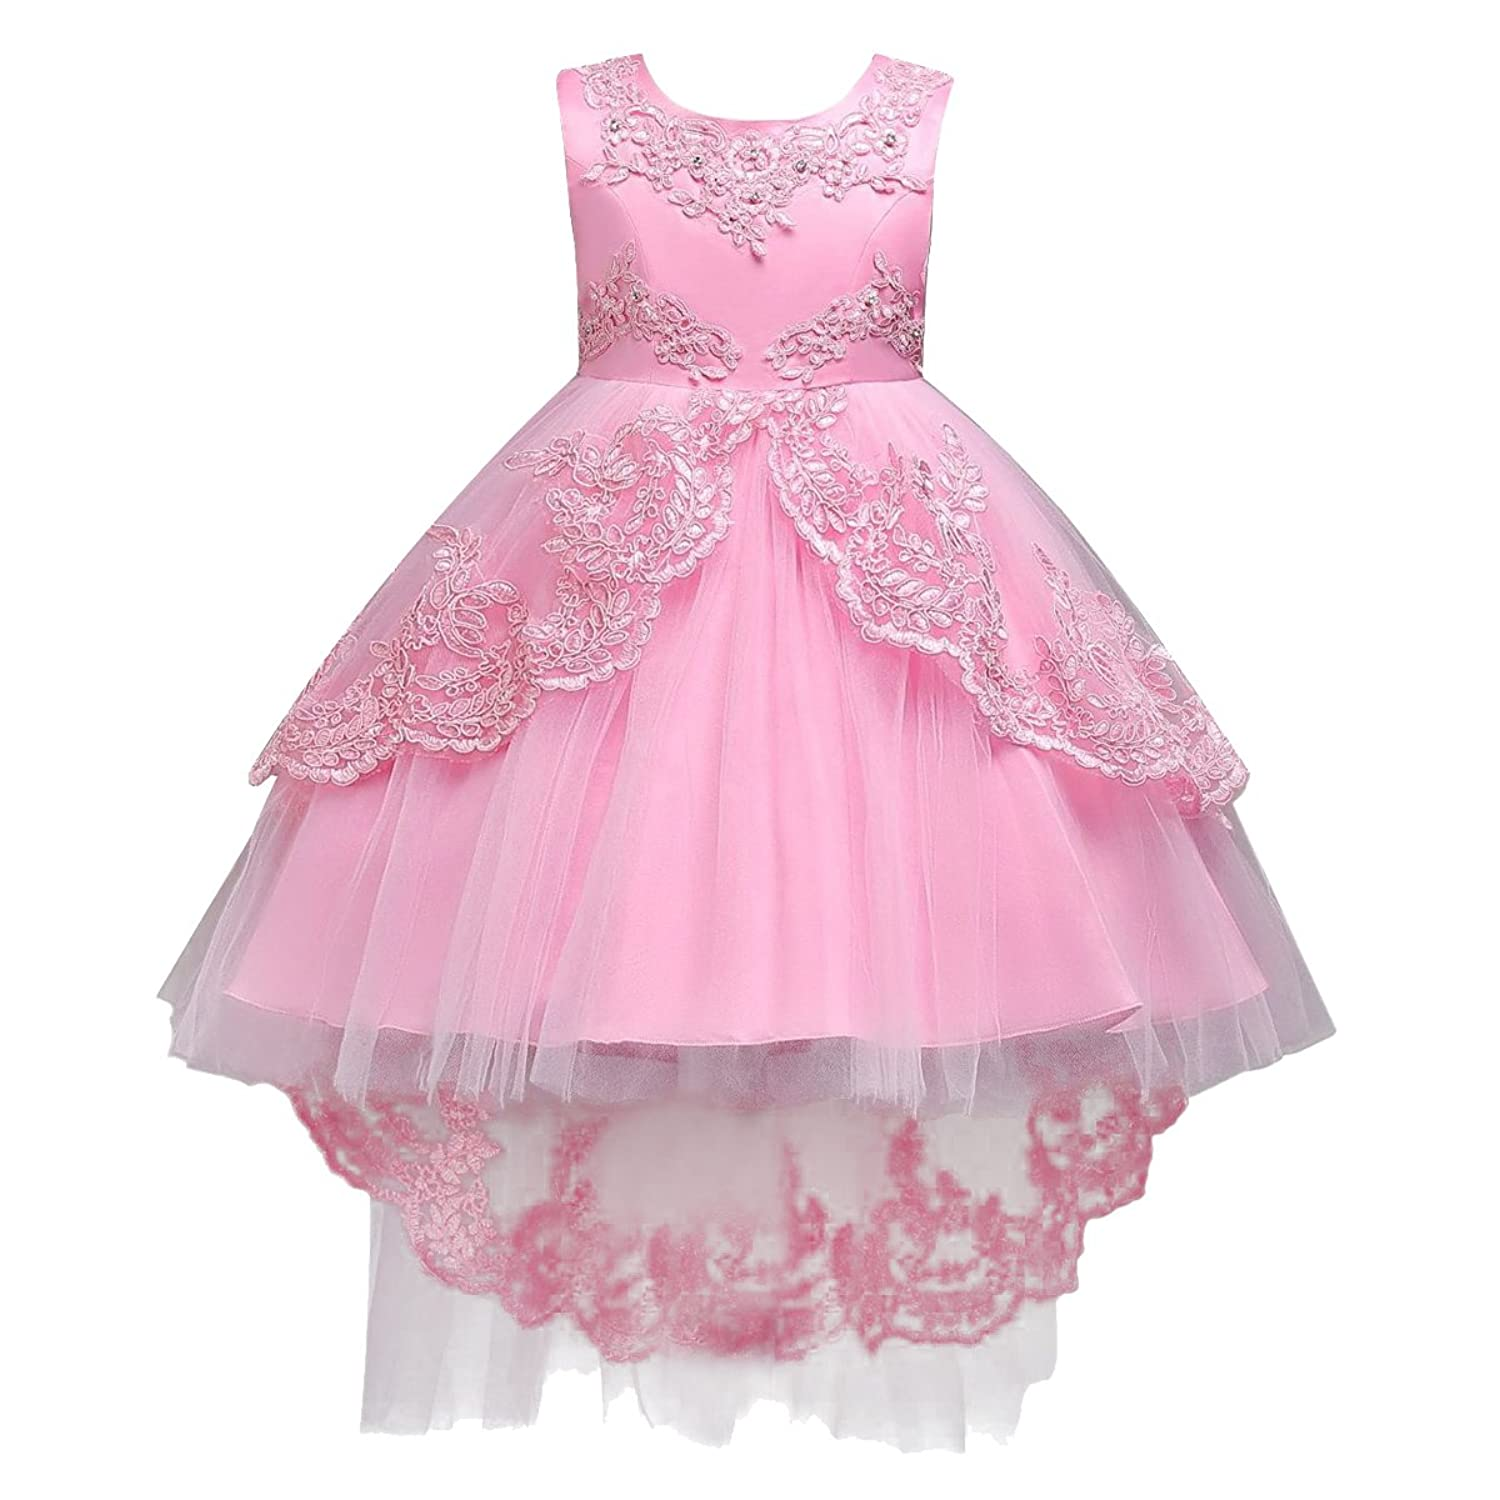 Beautiful Children Chiffon Sleeveless Flower Girls Dresses Round Neck High-low Kids Casual Daily Holiday Party Beach Parties Dress Weddings & Events